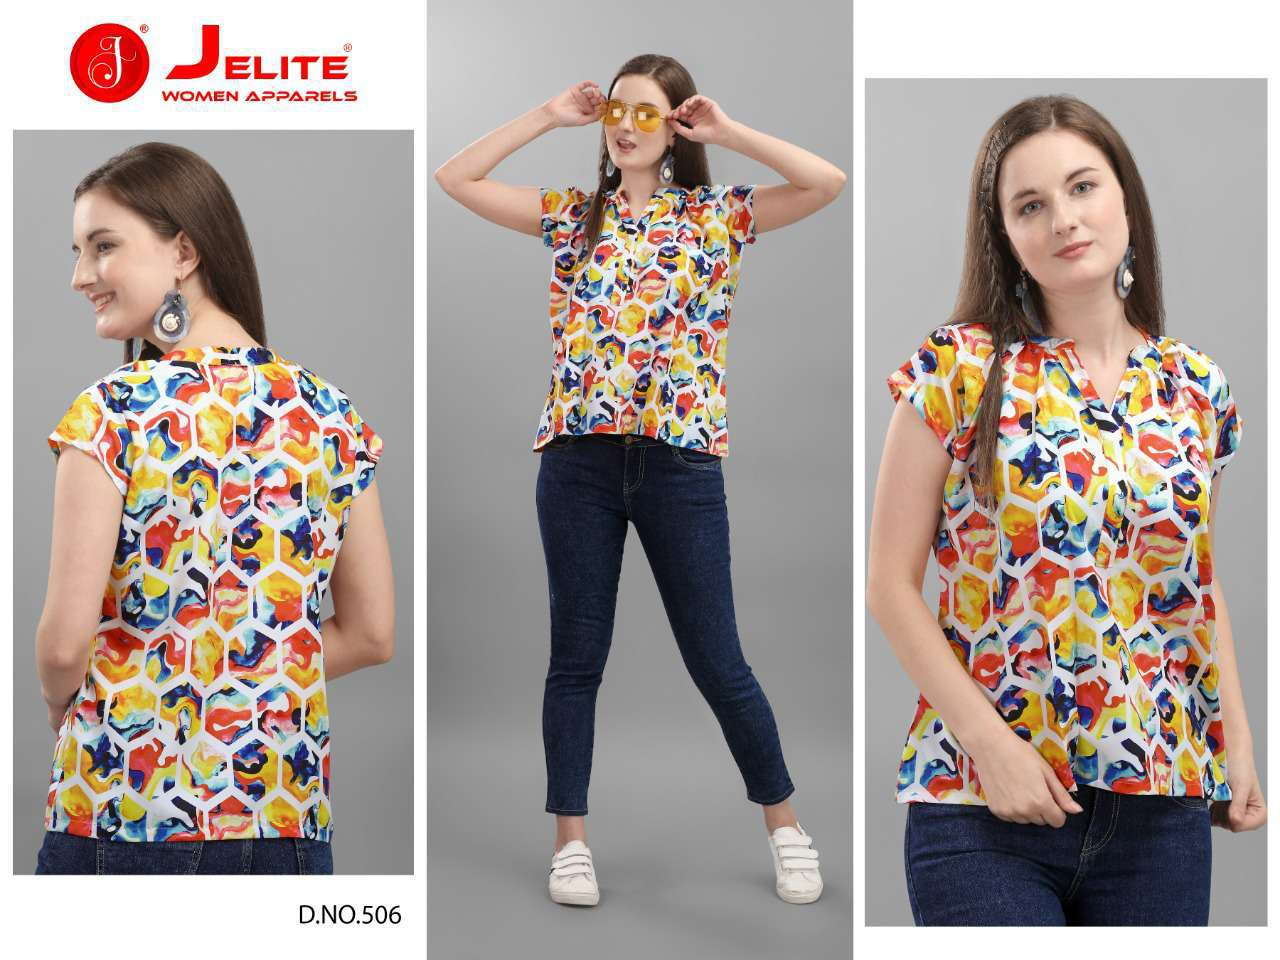 Jelite Orchid Tops Wholesale Catalog 8 Pcs 6 - Jelite Orchid Tops Wholesale Catalog 8 Pcs